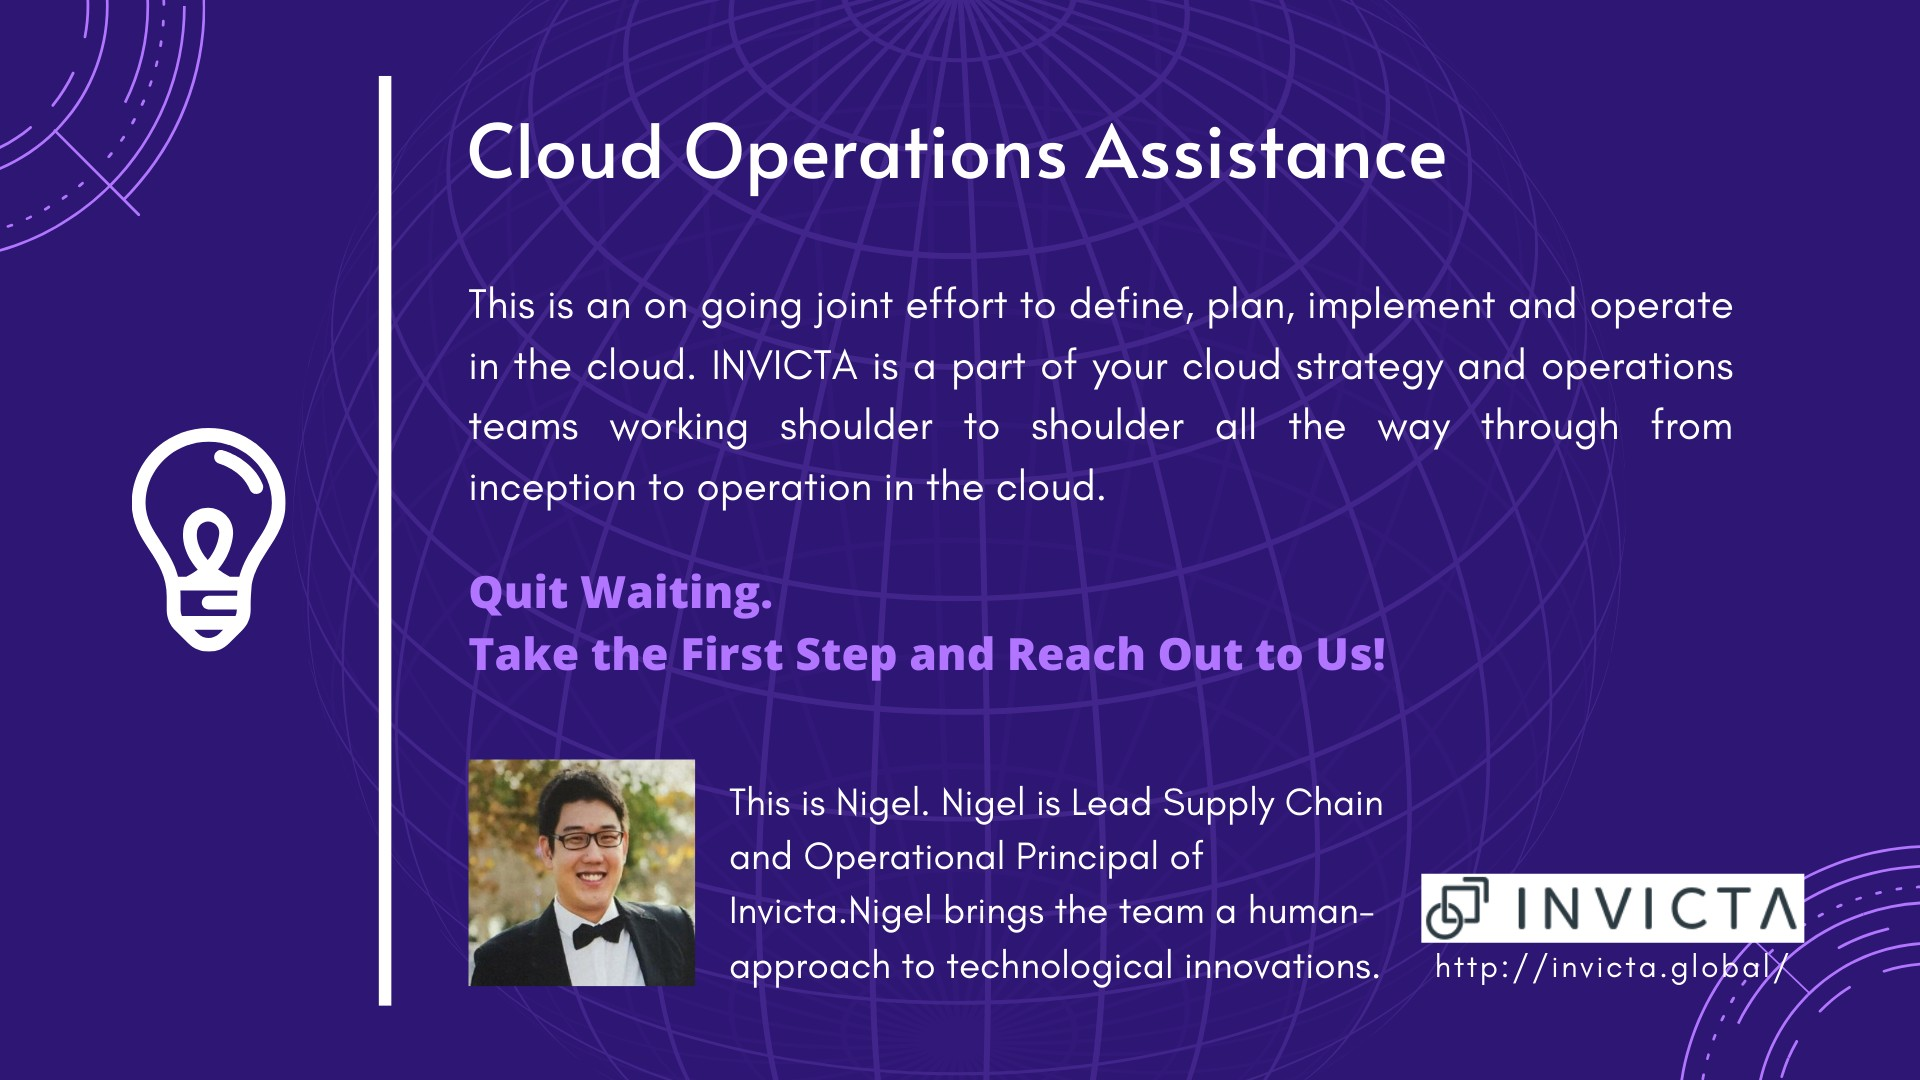 Innovation - Cloud Assistance